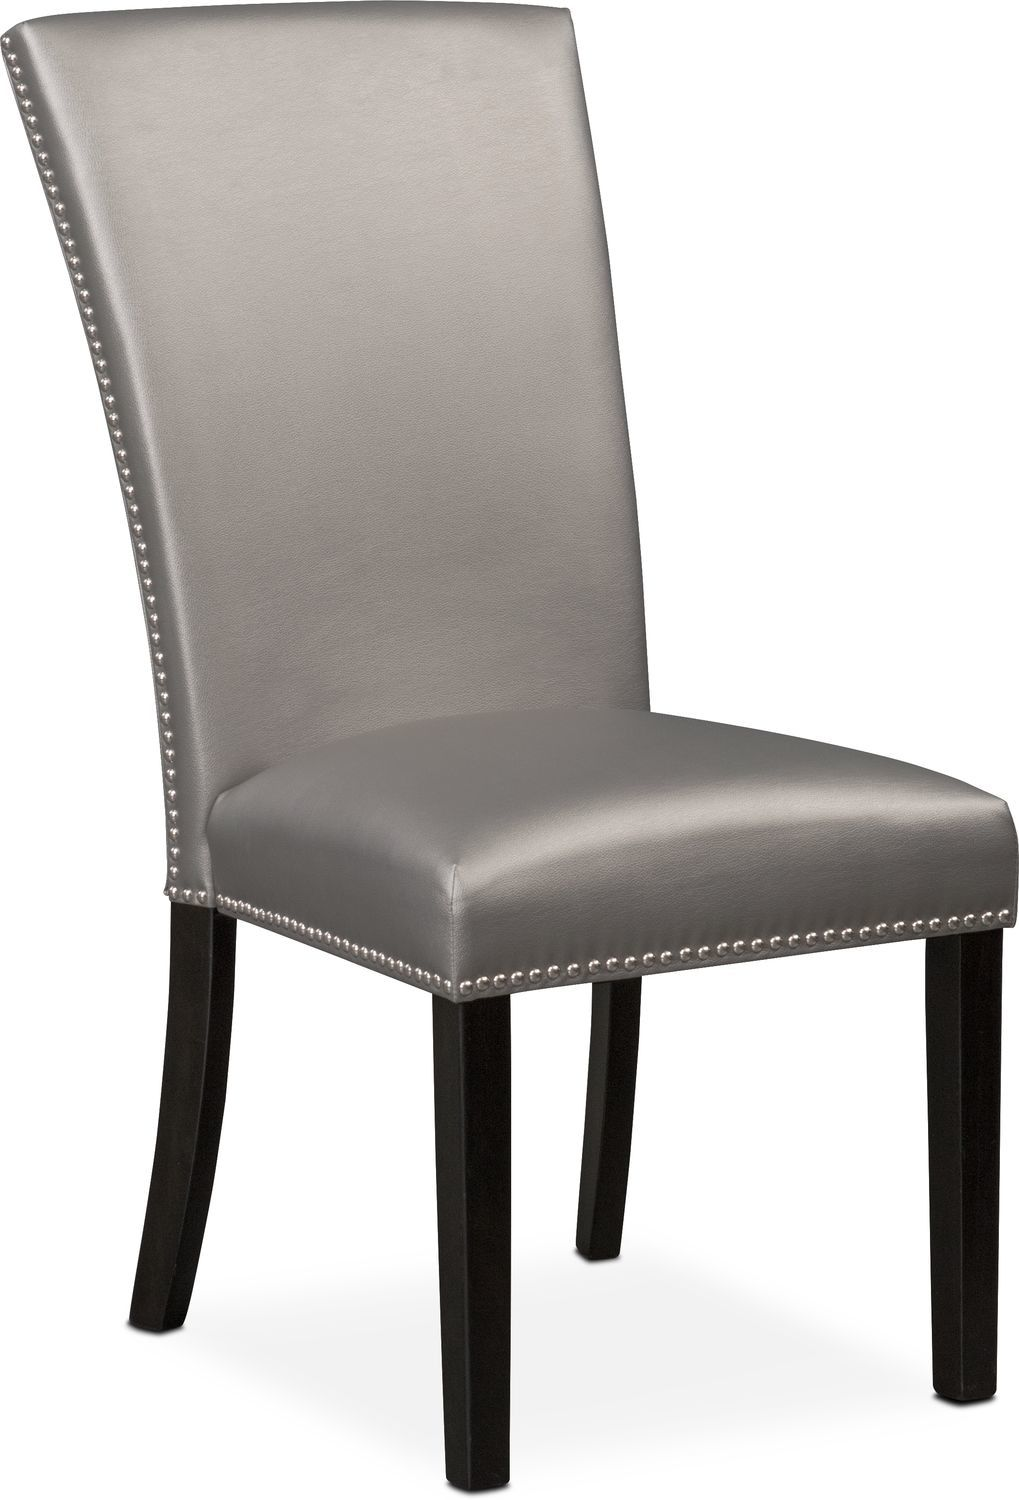 Artemis Side Chair Gray Grey Upholstered Dining Chairs Dining Chairs Upholstered Dining Chairs